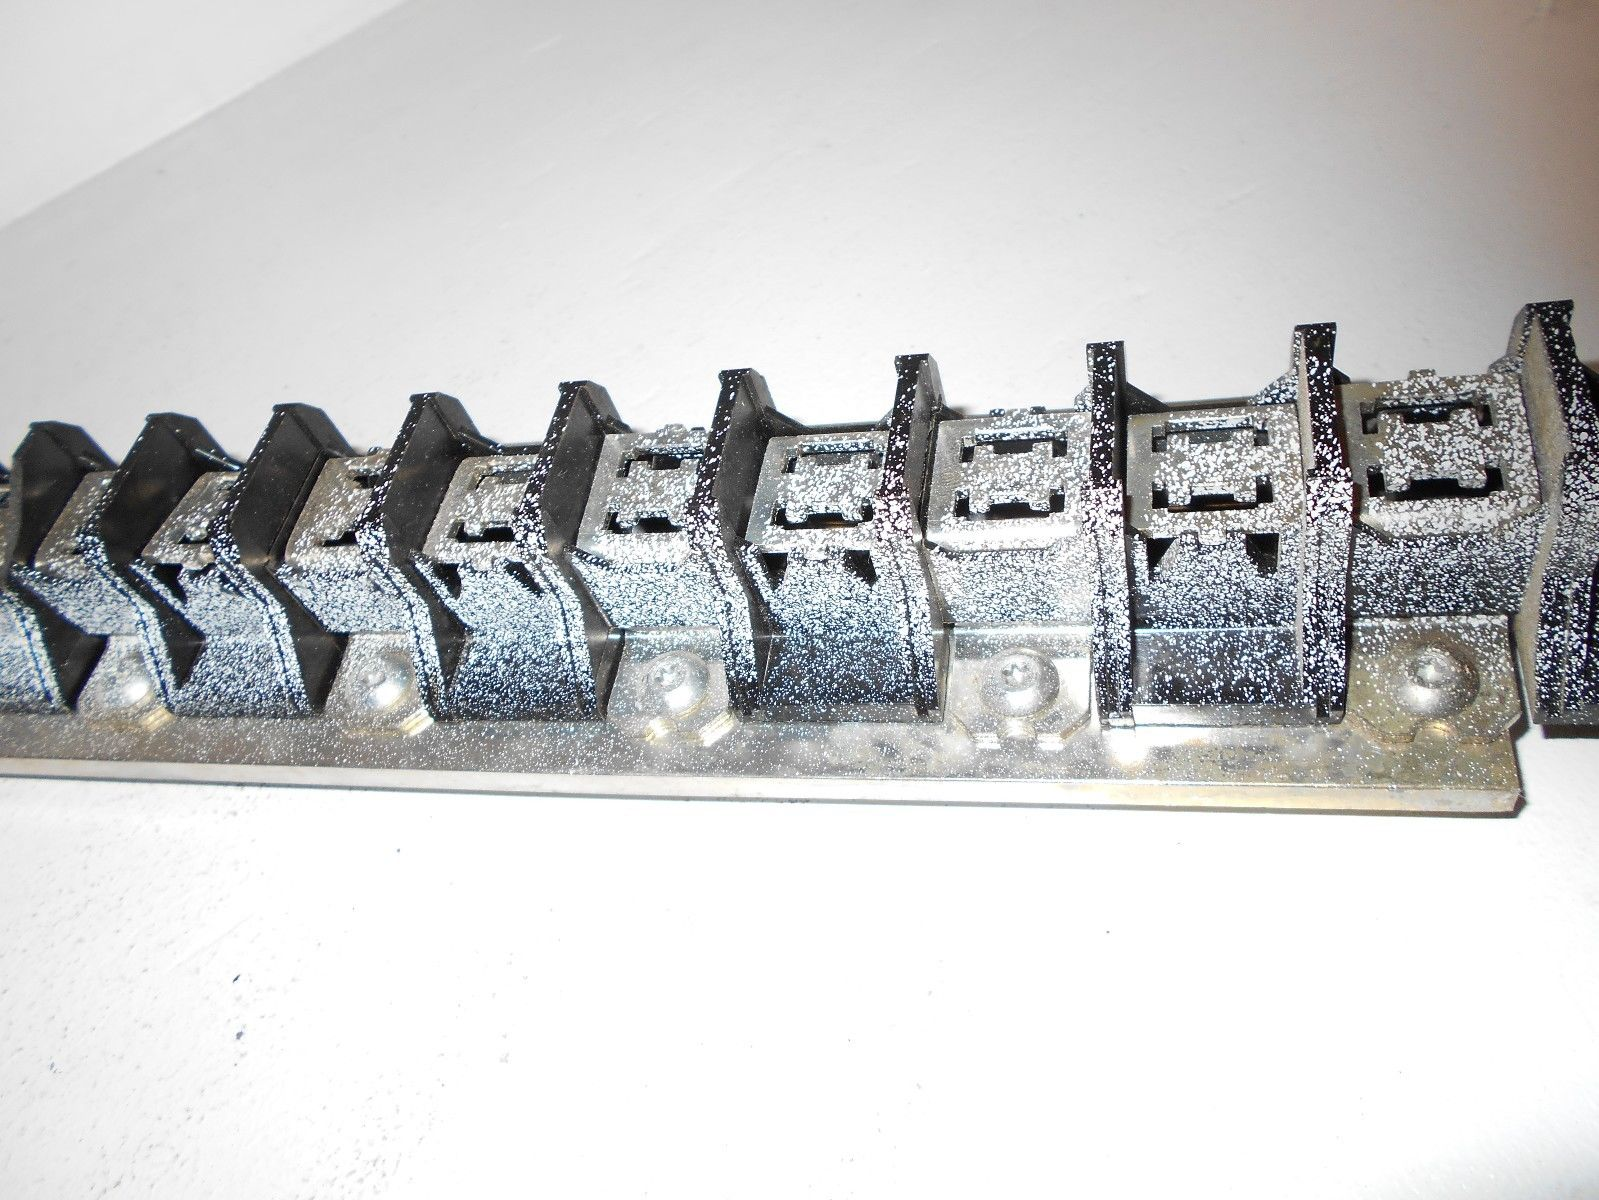 Federal Pacific Fpe American 30ckt Main Breaker Bus Bar 30 60 Clean Circuit Panel As Well House Wiring Circuits